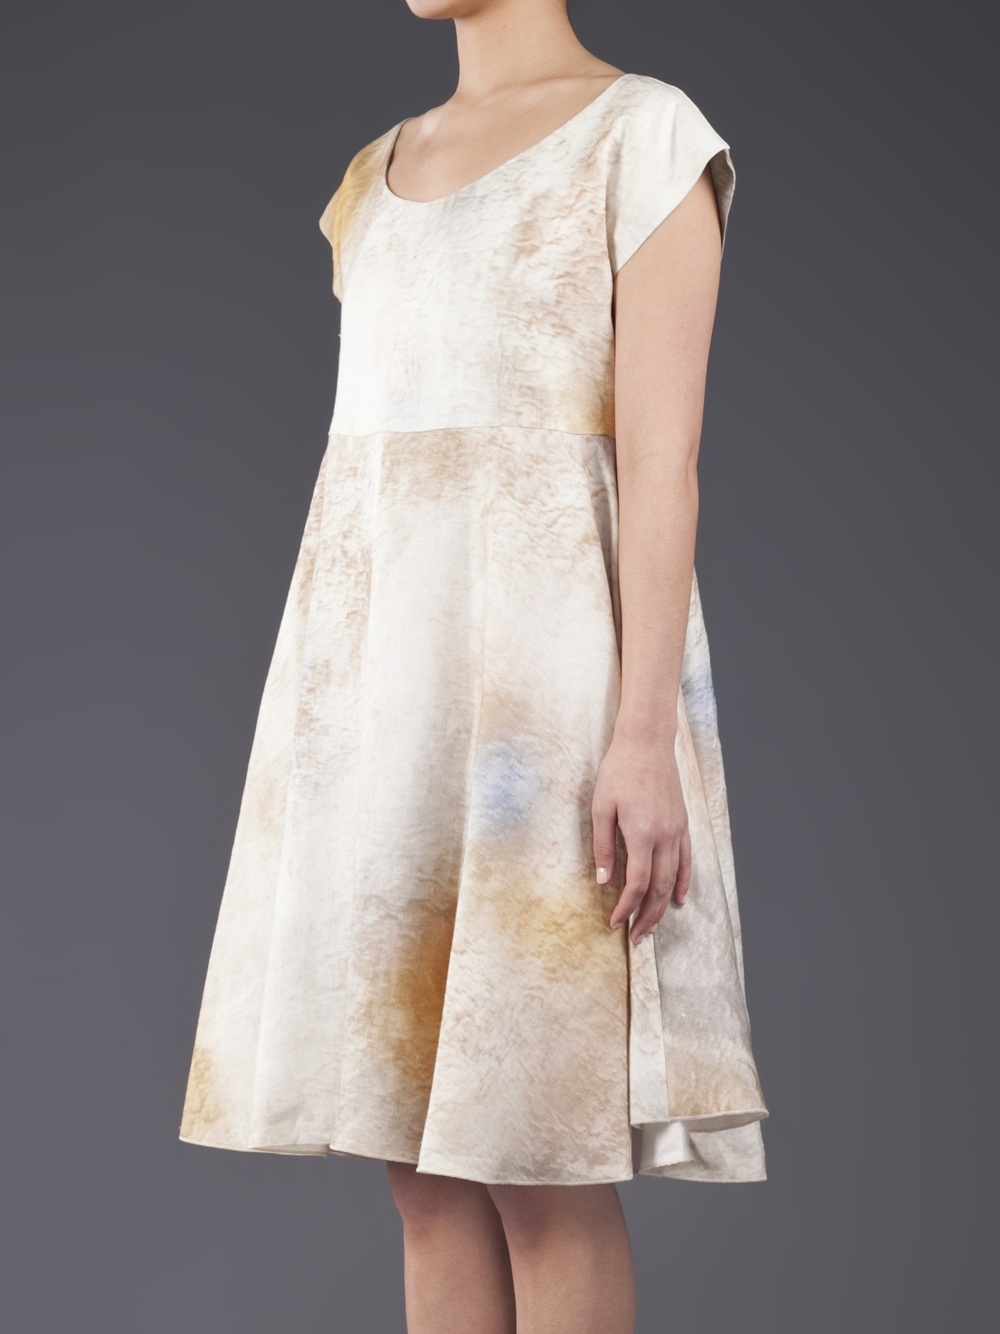 Lyst ter et bantine stained dress in white for 43591 white cap terrace